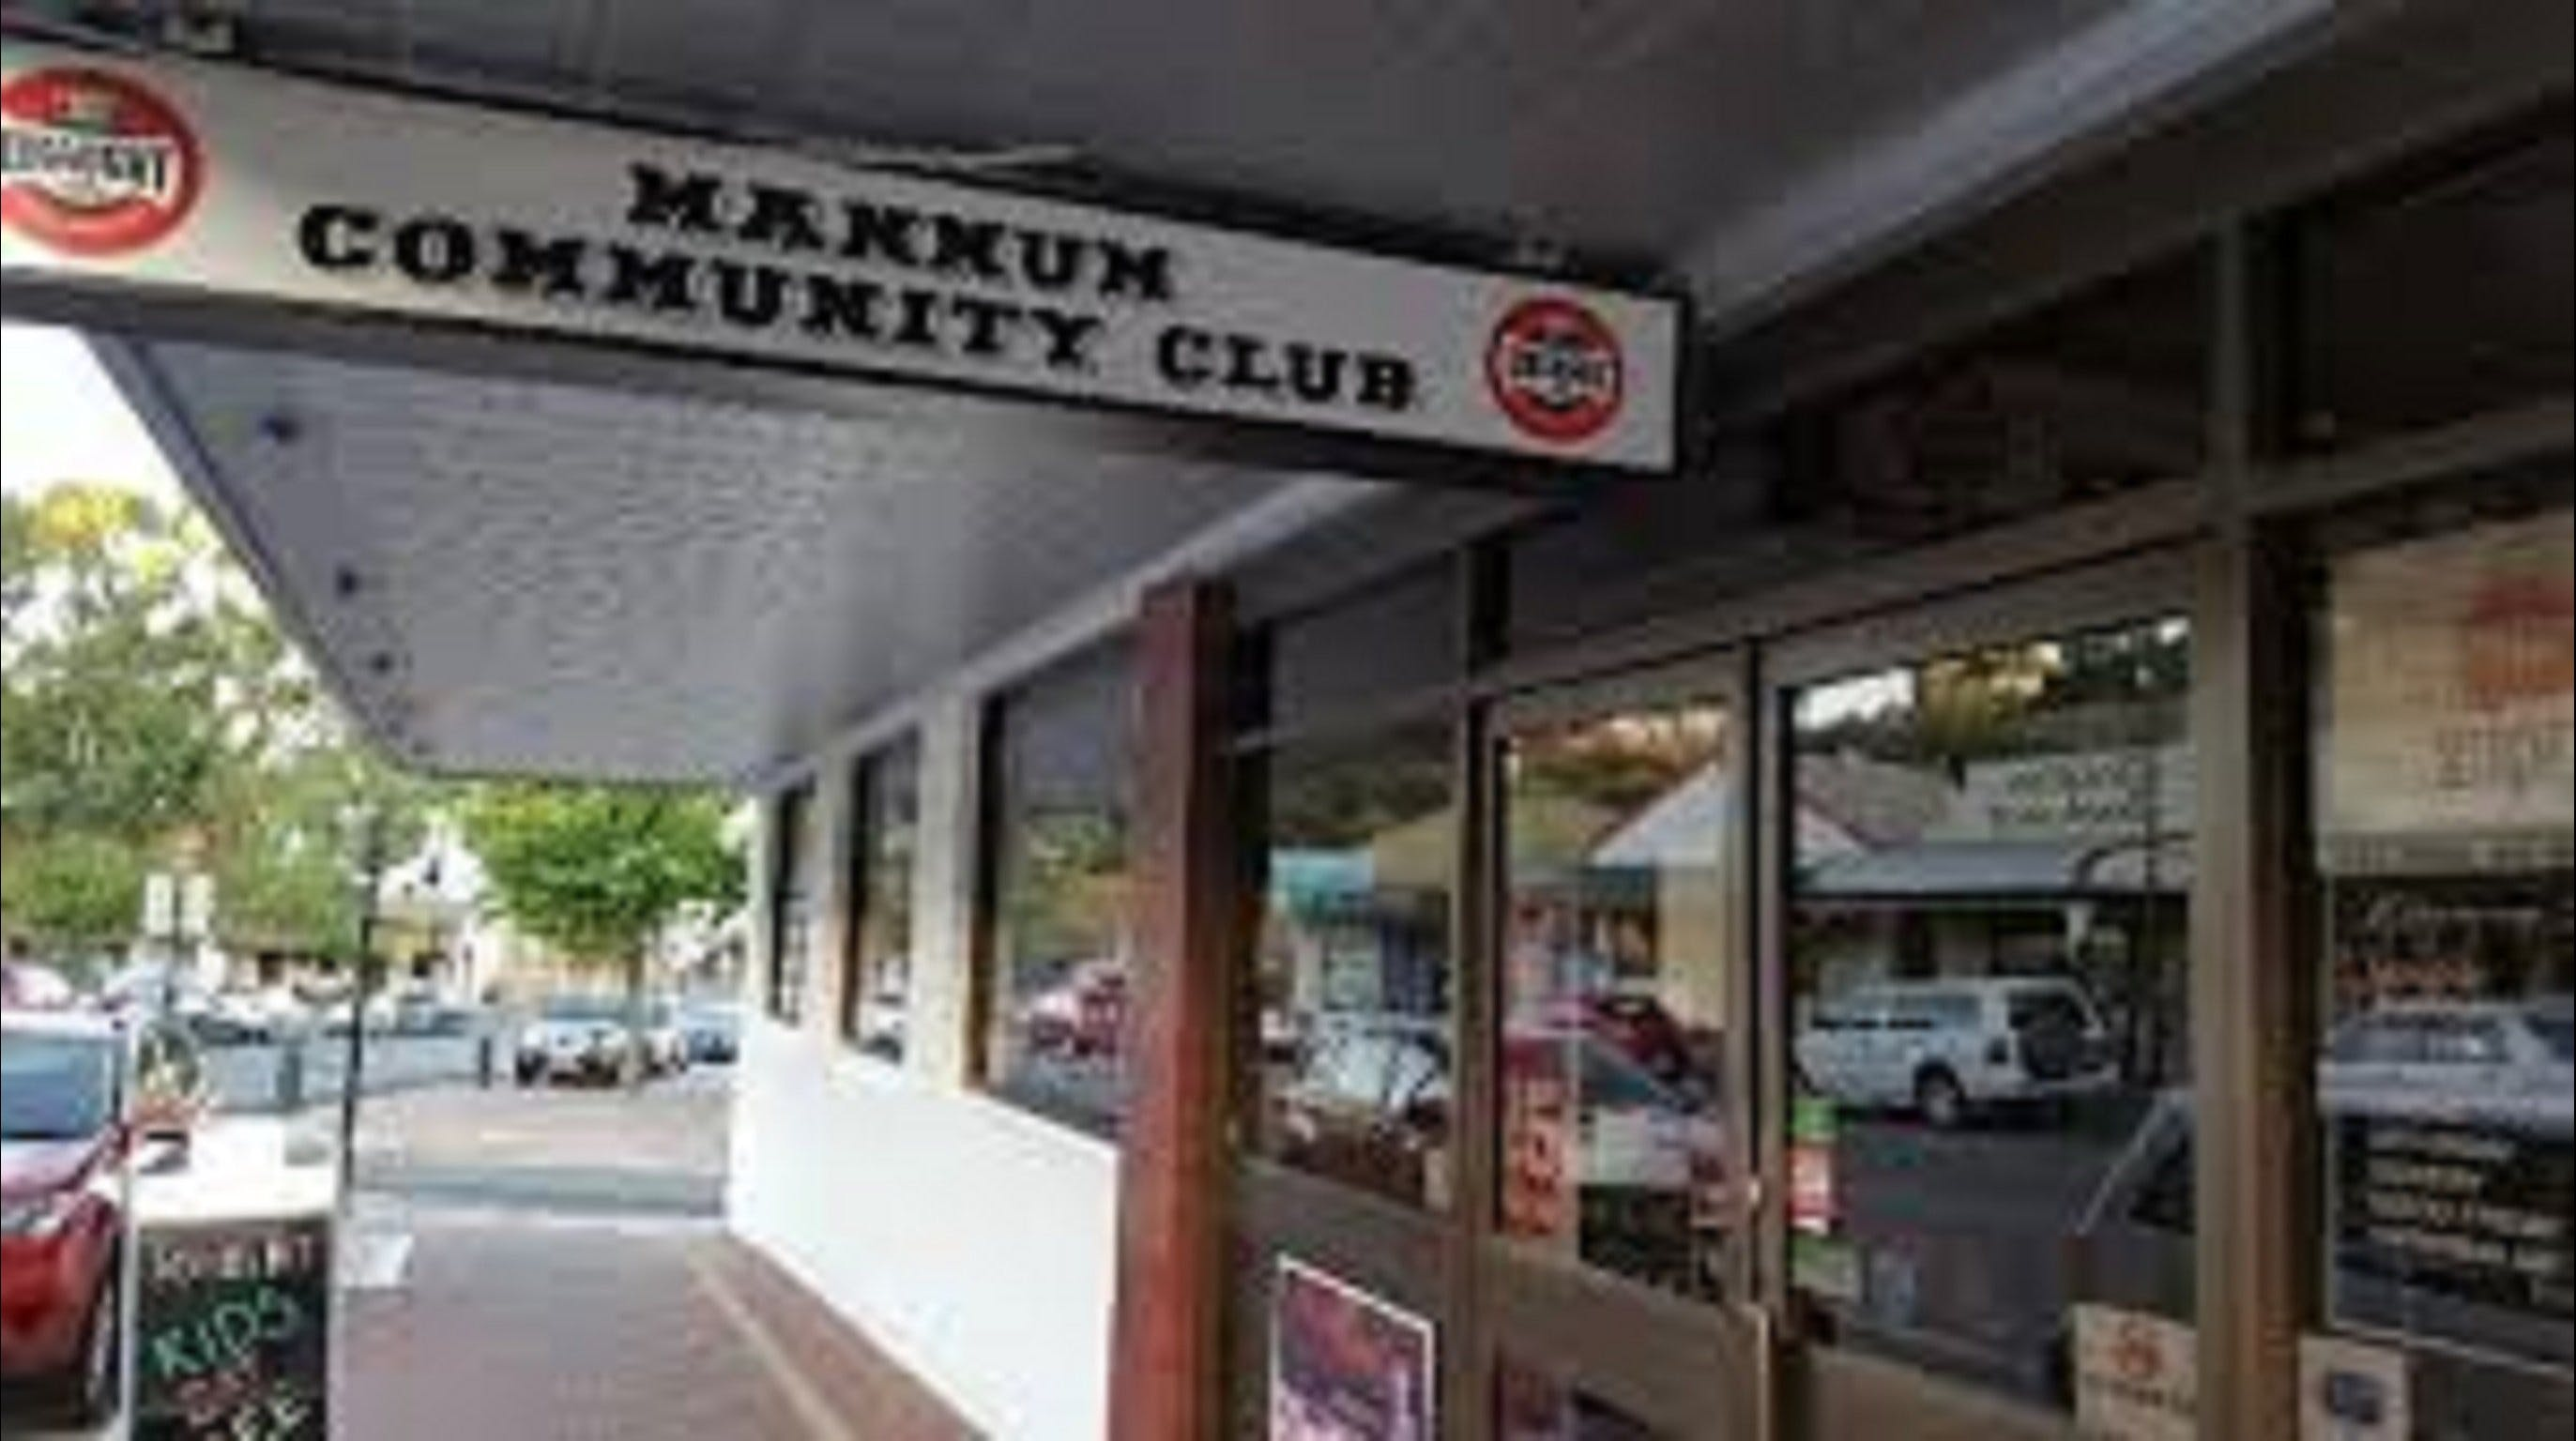 Mannum Community Club - Mackay Tourism